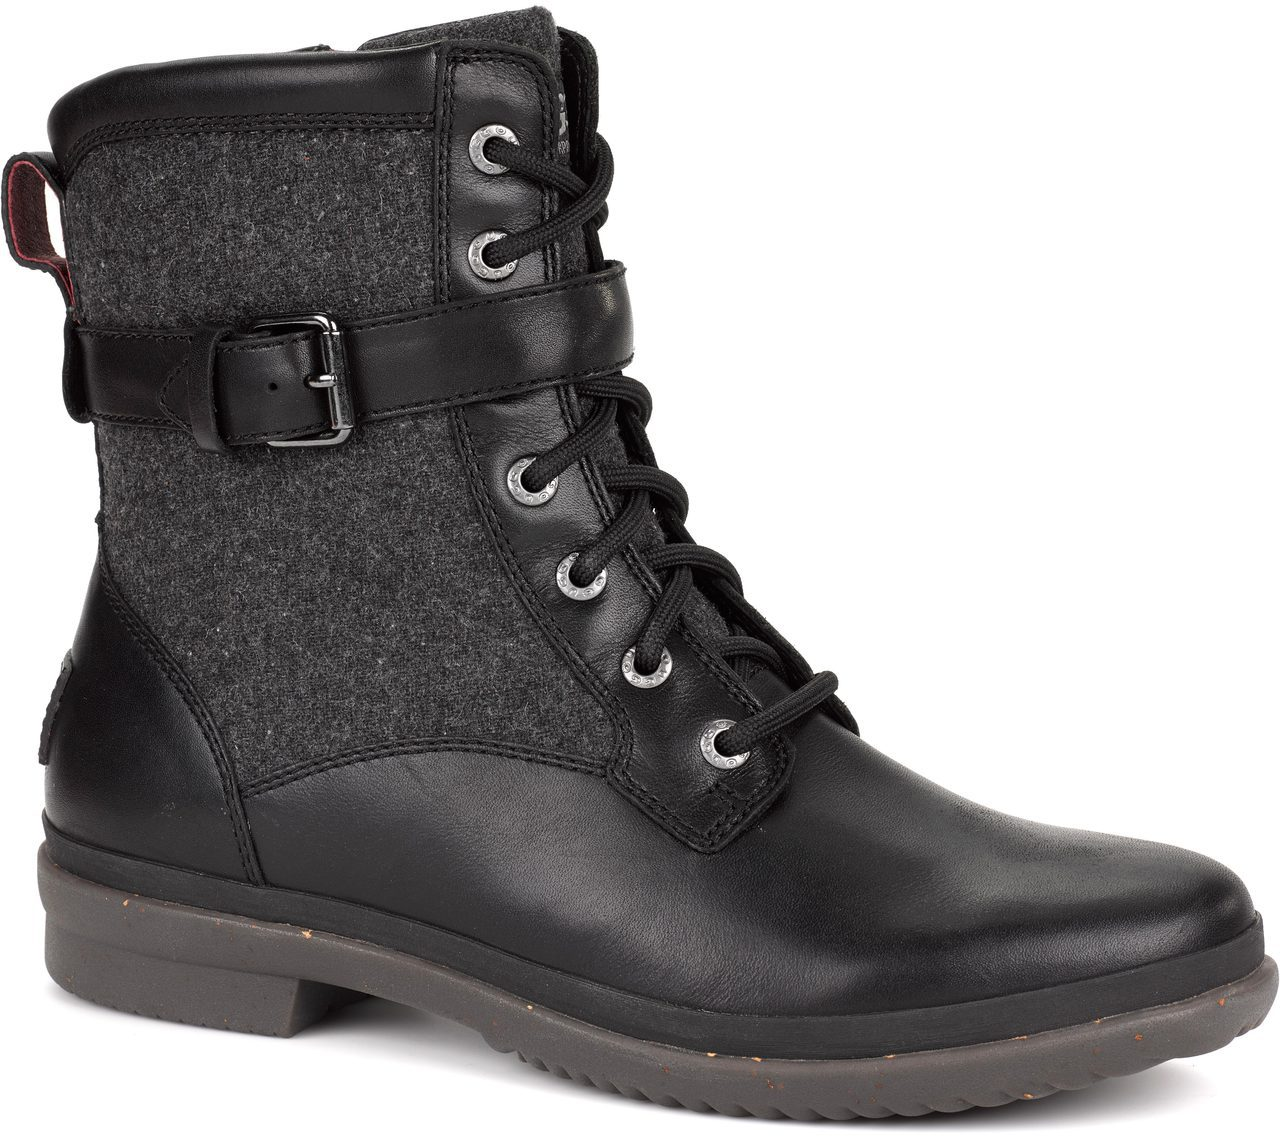 ed51ac51293 Style Tips  Combat boots like the UGG Kesey are versatile yet daring  fashion pieces